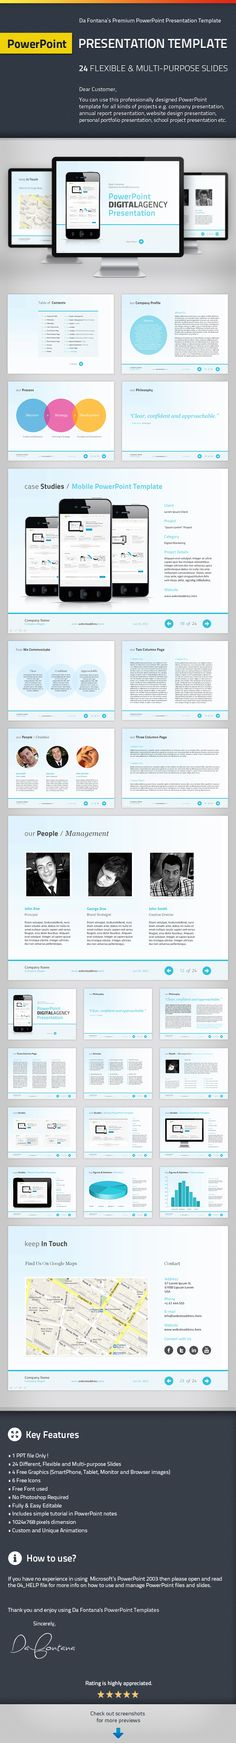 PowerPoint Agency / Personal Presentation Template by CheDaFontana.deviantart.com on @deviantART